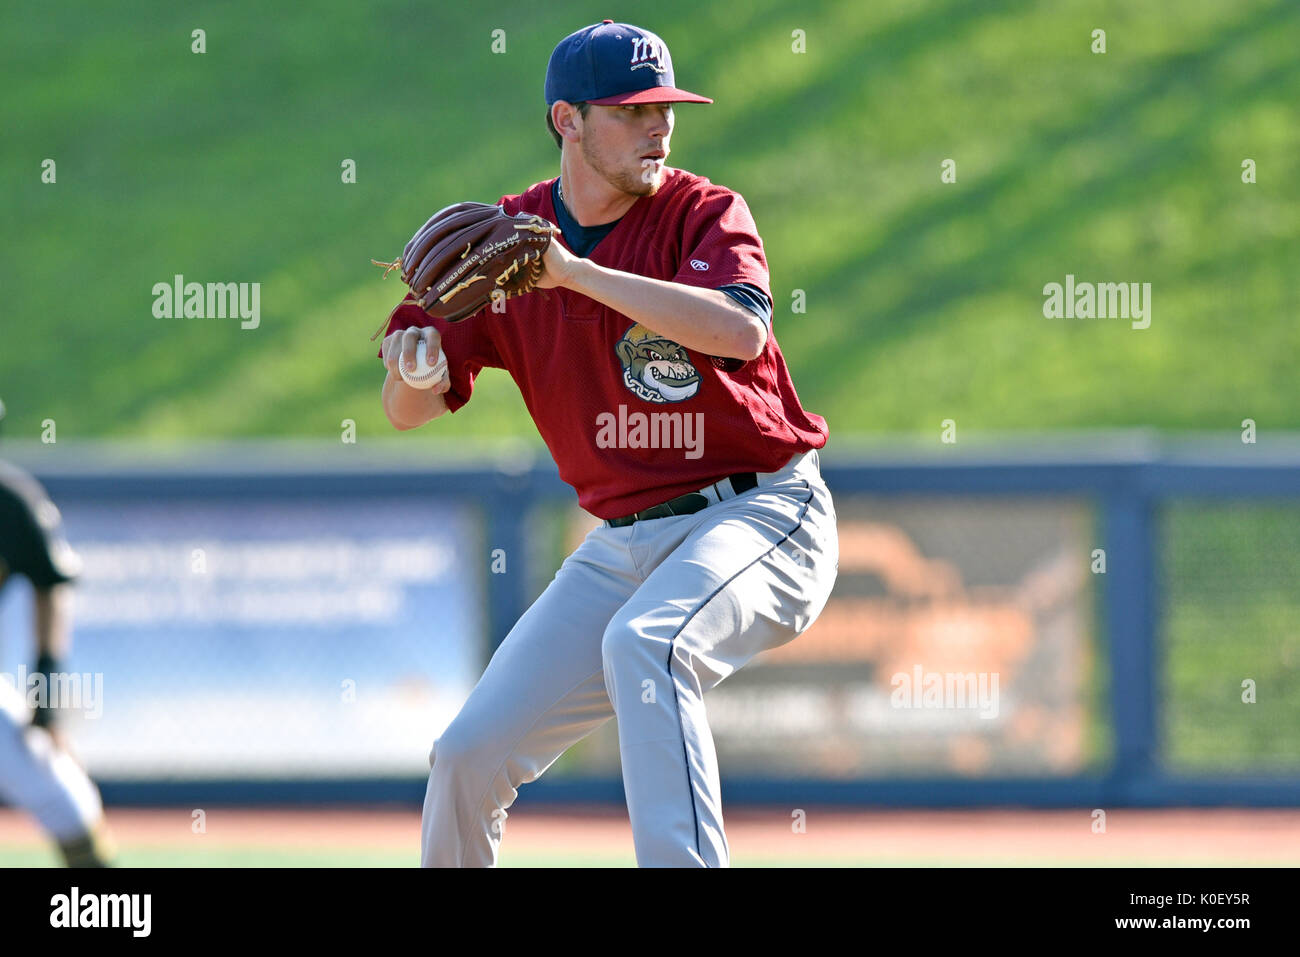 Morgantown, West Virginia, USA. 20th Aug, 2017. Mahoning Valley Scrappers pitcher RILEY ECHOLS (35) pitches during the August 20, 2017 New York-Penn league game at Monongalia County Ballpark in Morgantown, WV. Credit: Ken Inness/ZUMA Wire/Alamy Live News - Stock Image